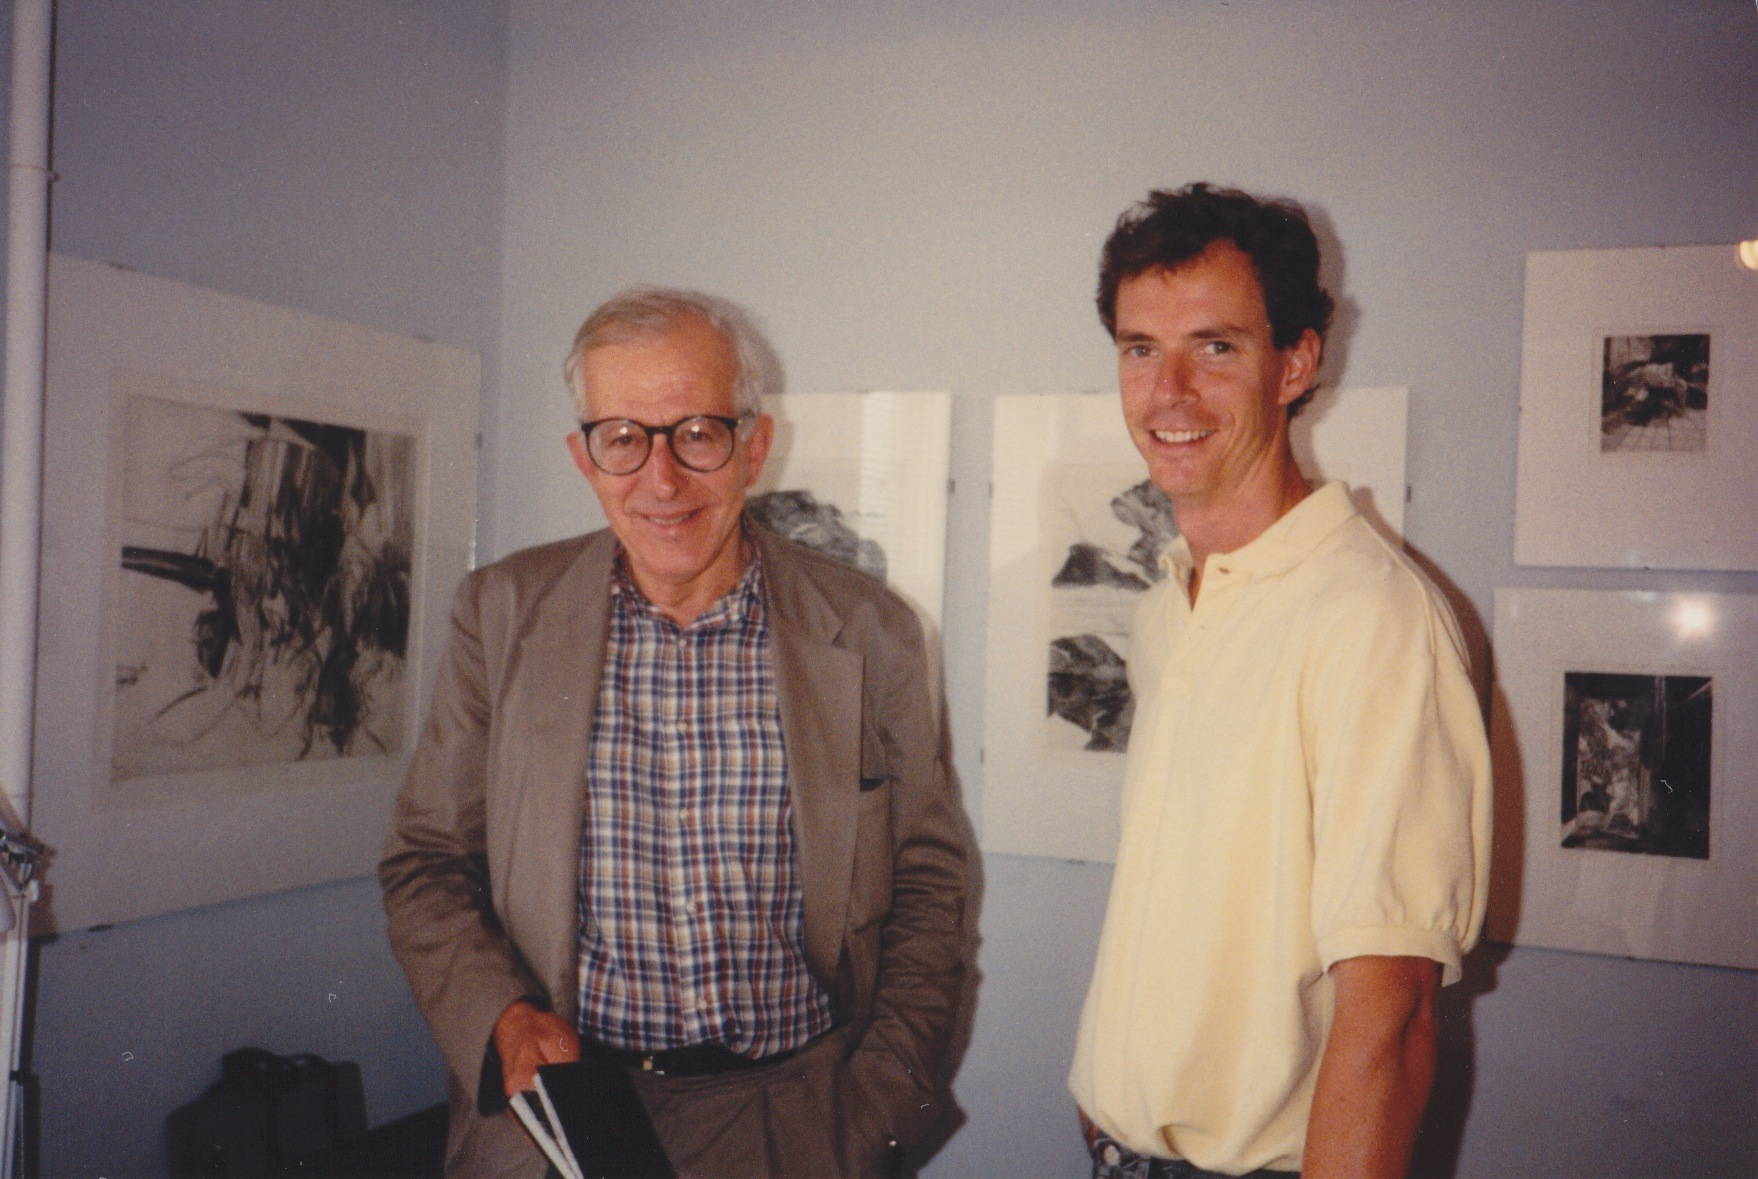 Artist and mentor George Ball with James Stroud at the artist's exhibition at the Distillery Building in 1988.